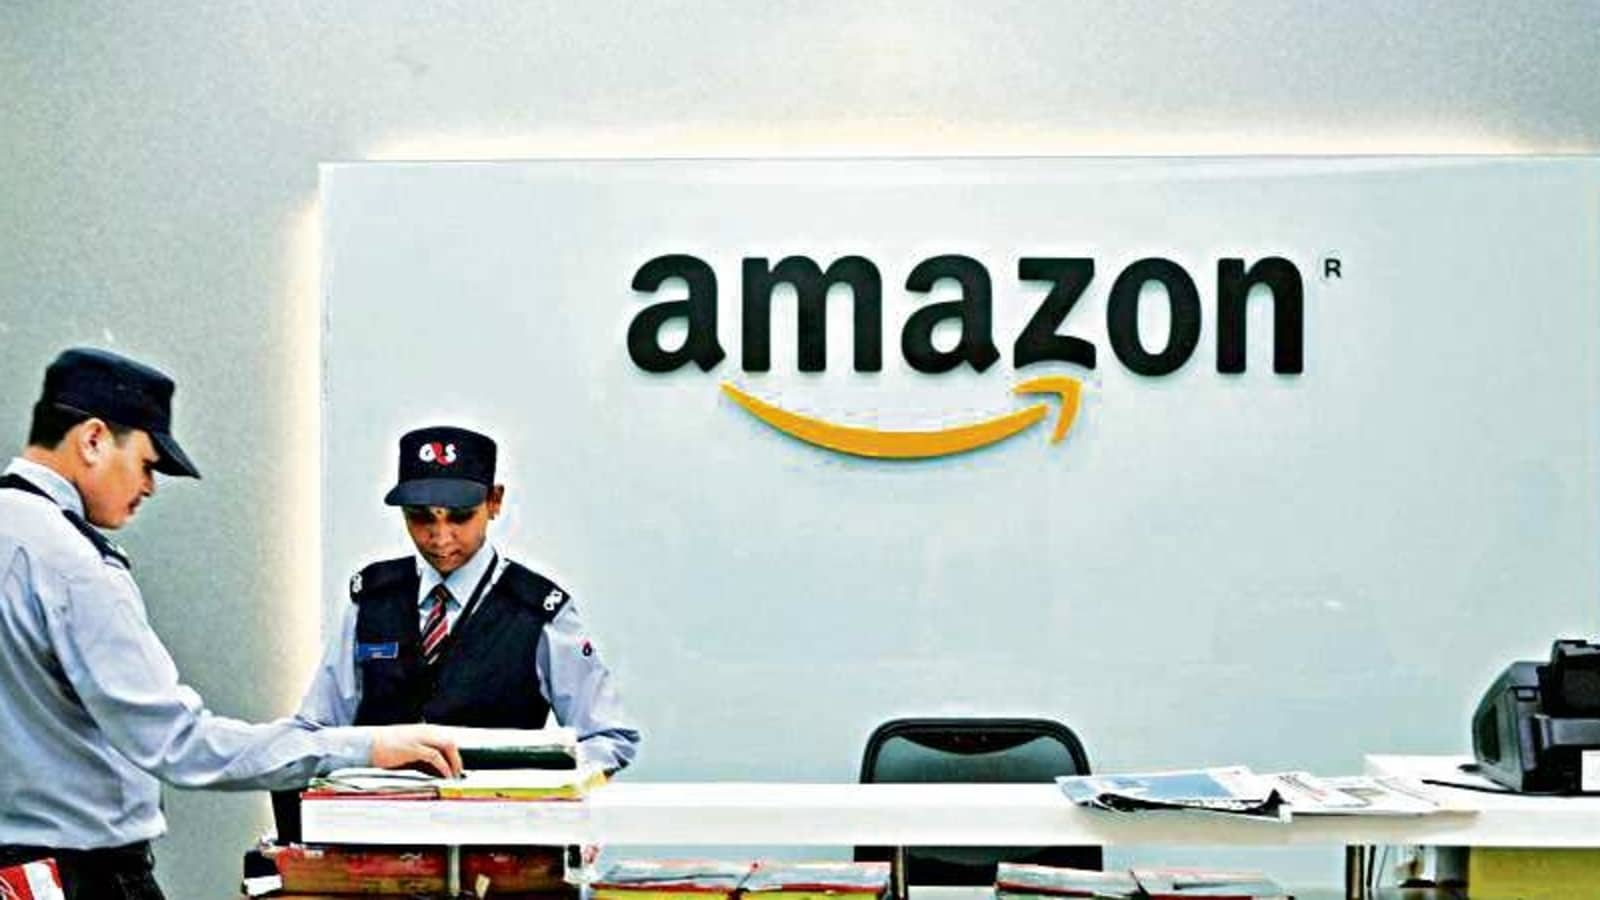 Amazon is helping to raise the union